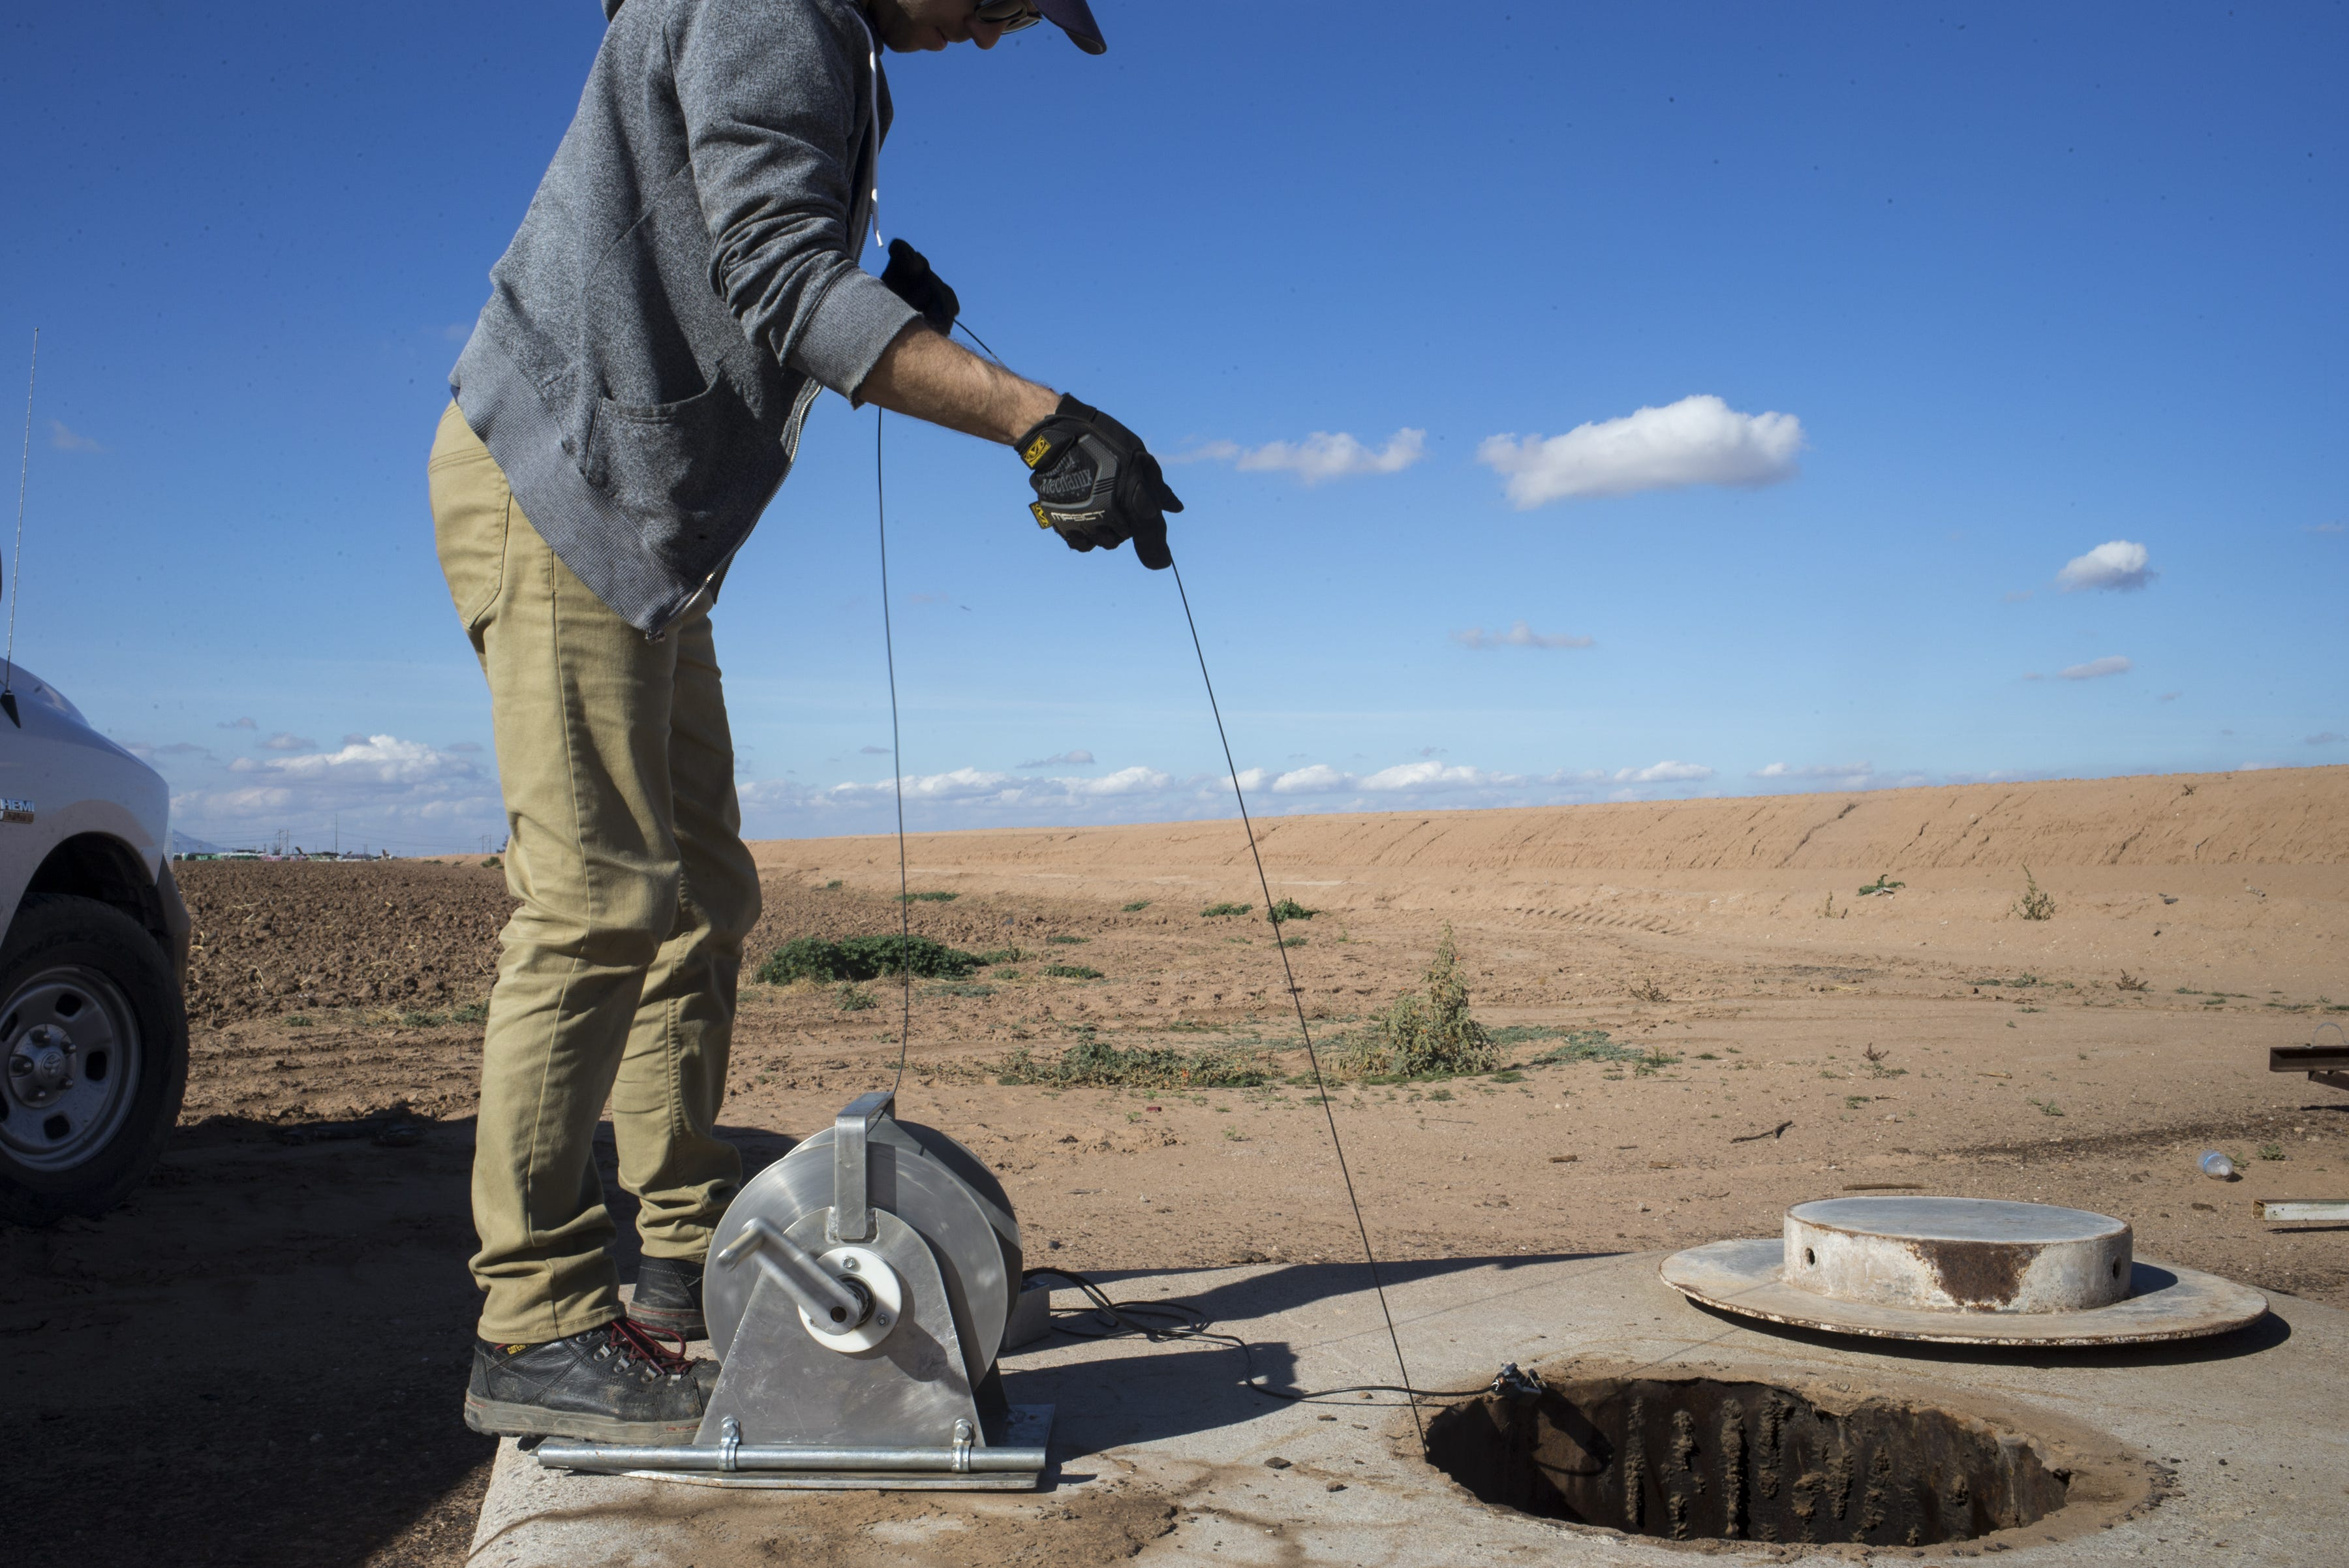 Scott Stuk of the Arizona Department of Water Resources drops a probe down an unused well south of Maricopa. The water depth was 280 feet.